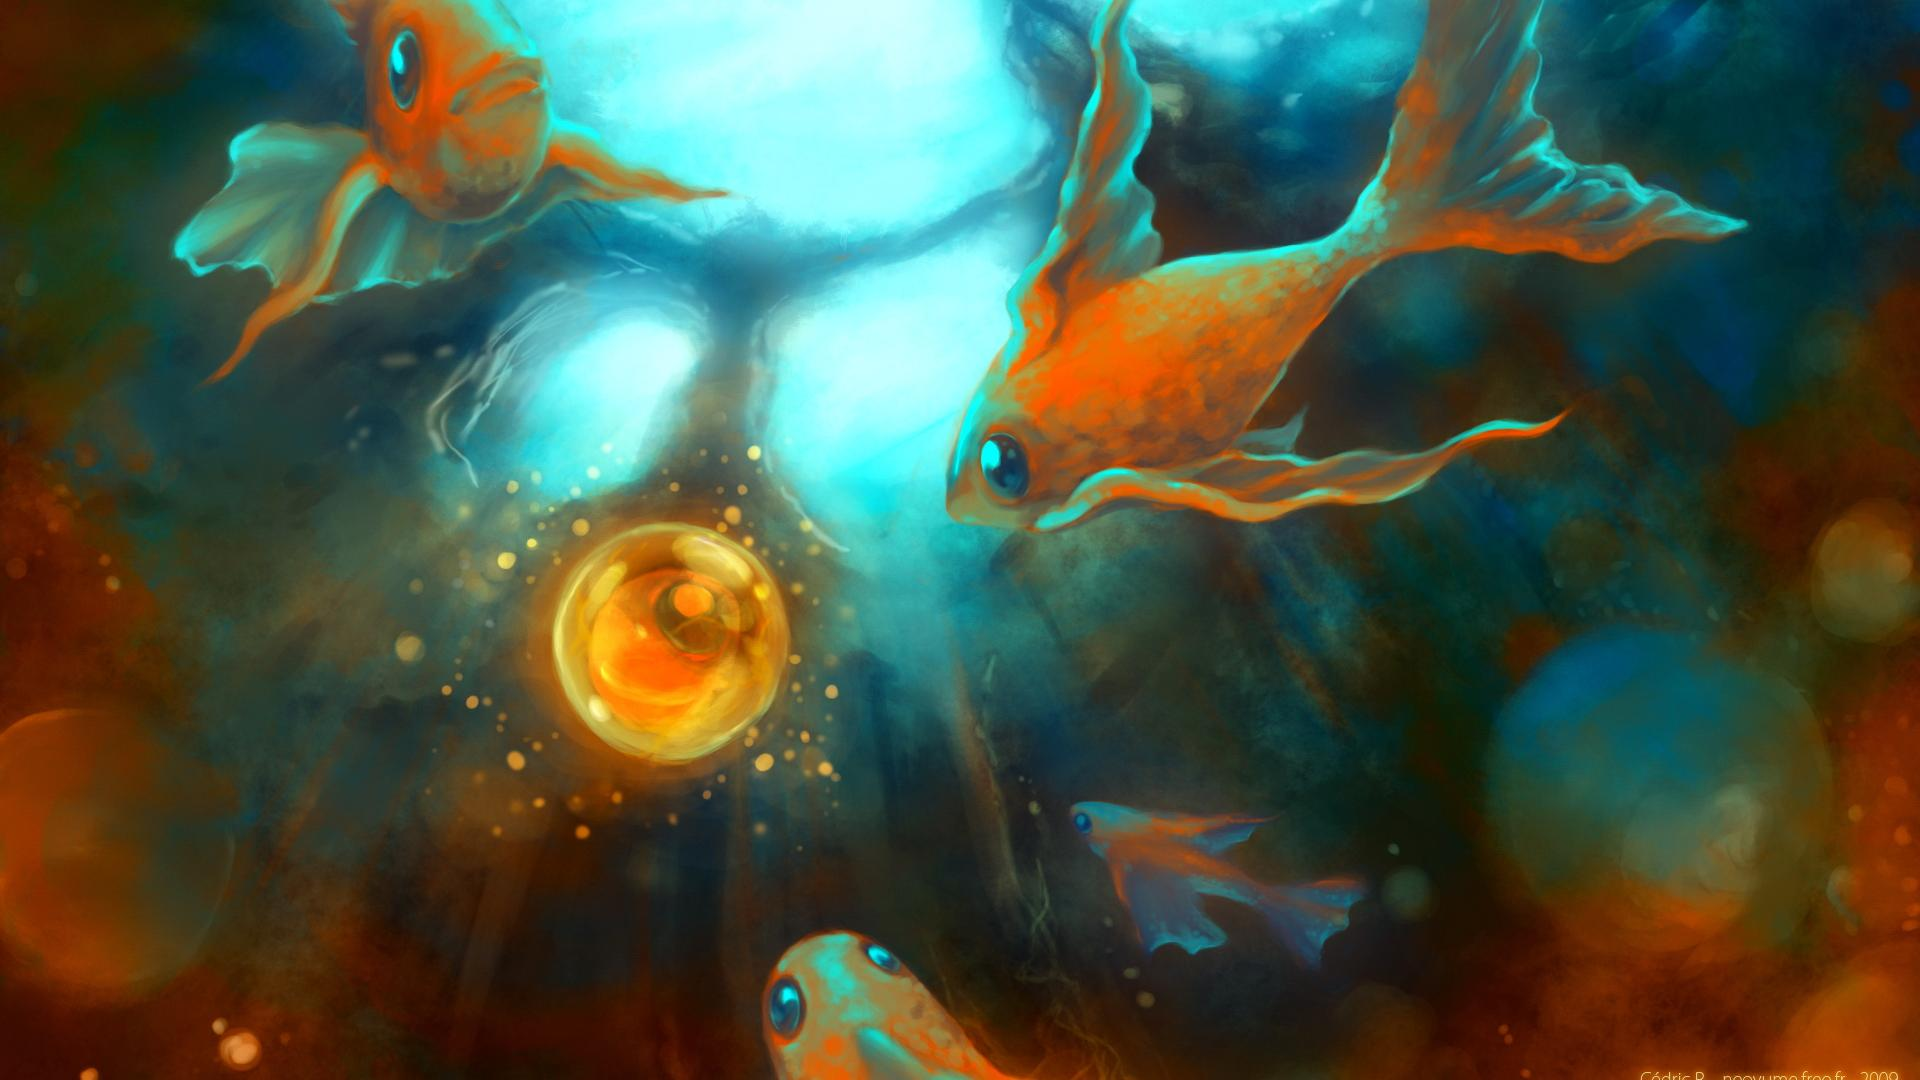 Hd Cool Goldfish Background Download Widescreen and HD 1920x1080